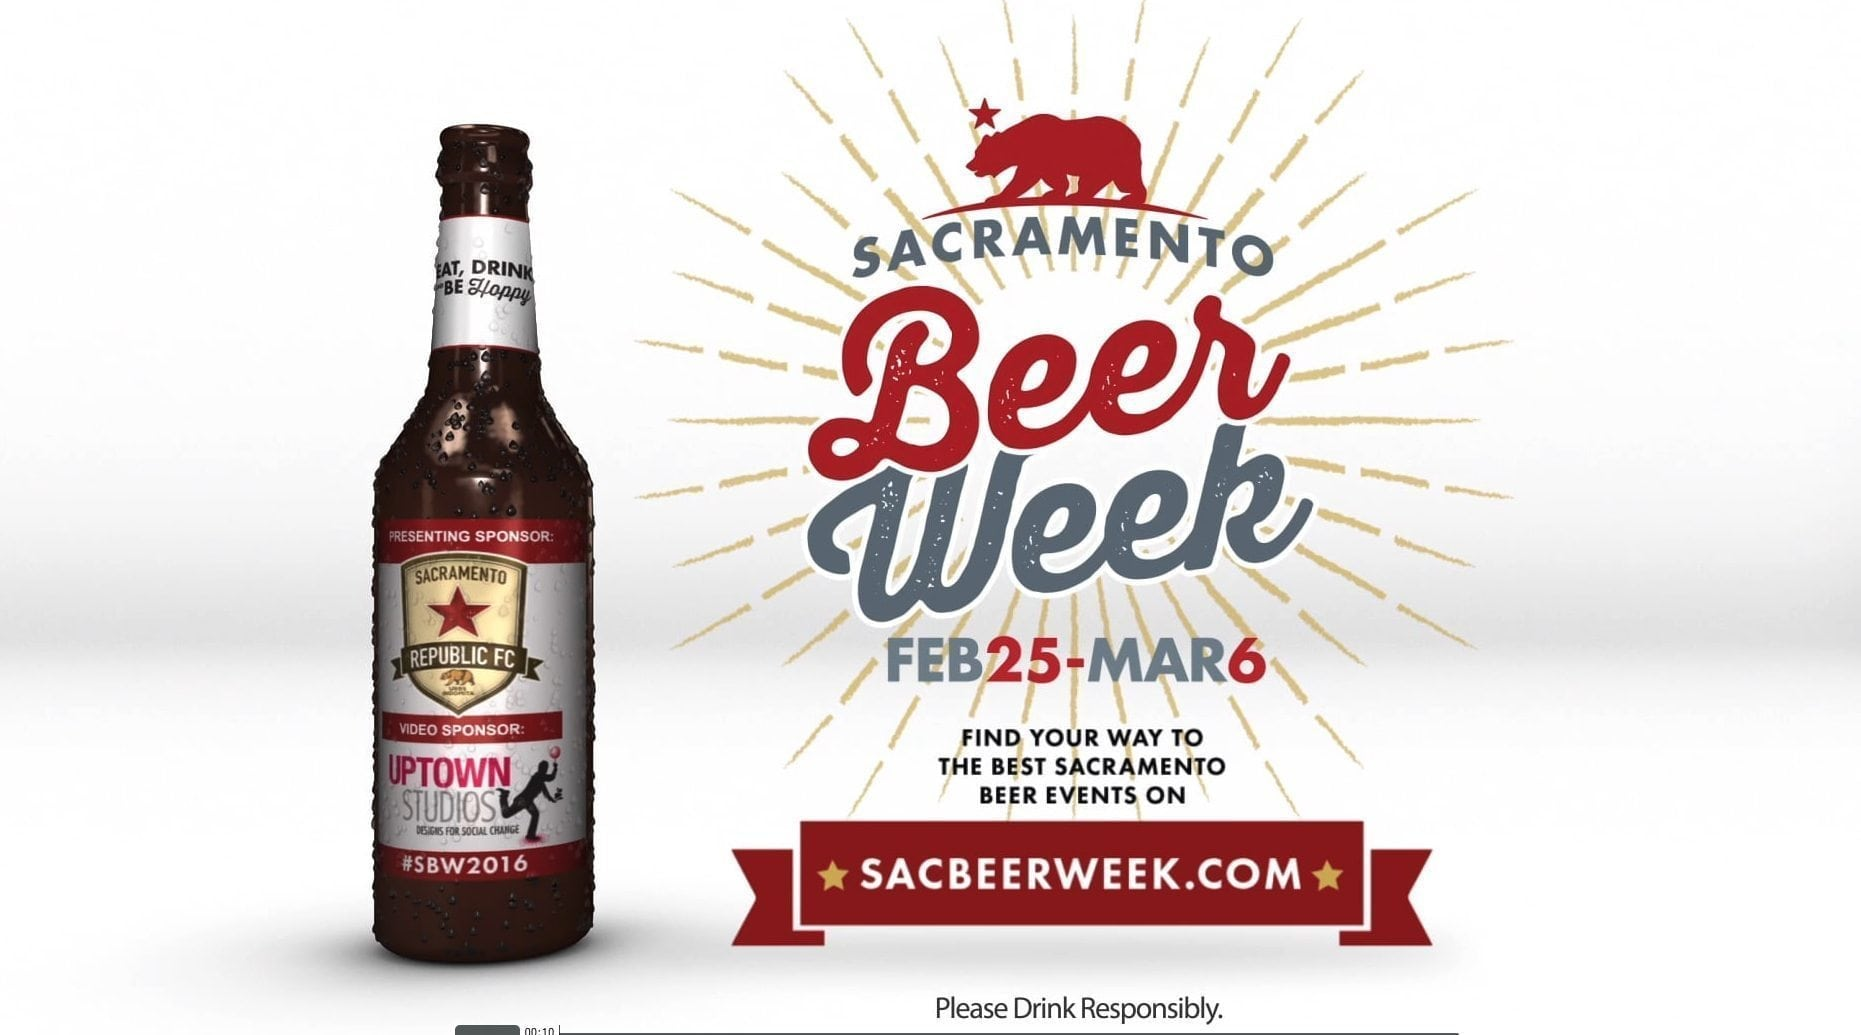 The Sac Beer Week logo next to a bottle of beer